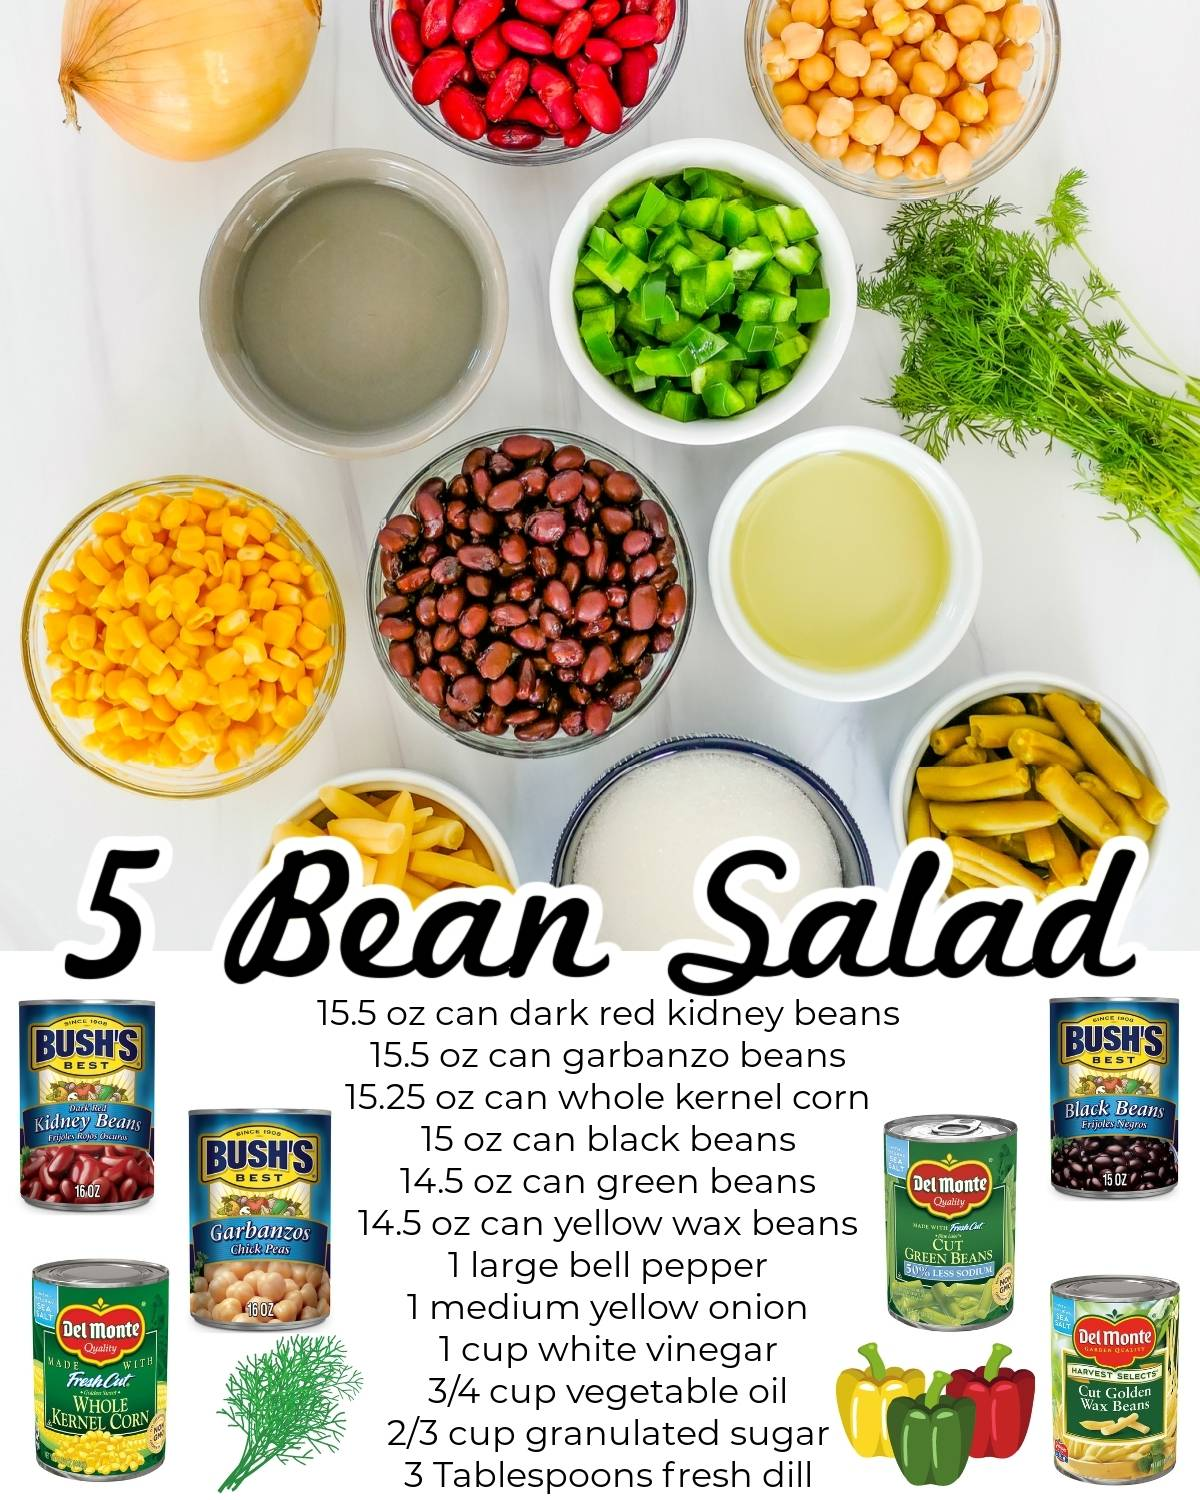 All of the ingredients needed to make 5 Bean Salad.